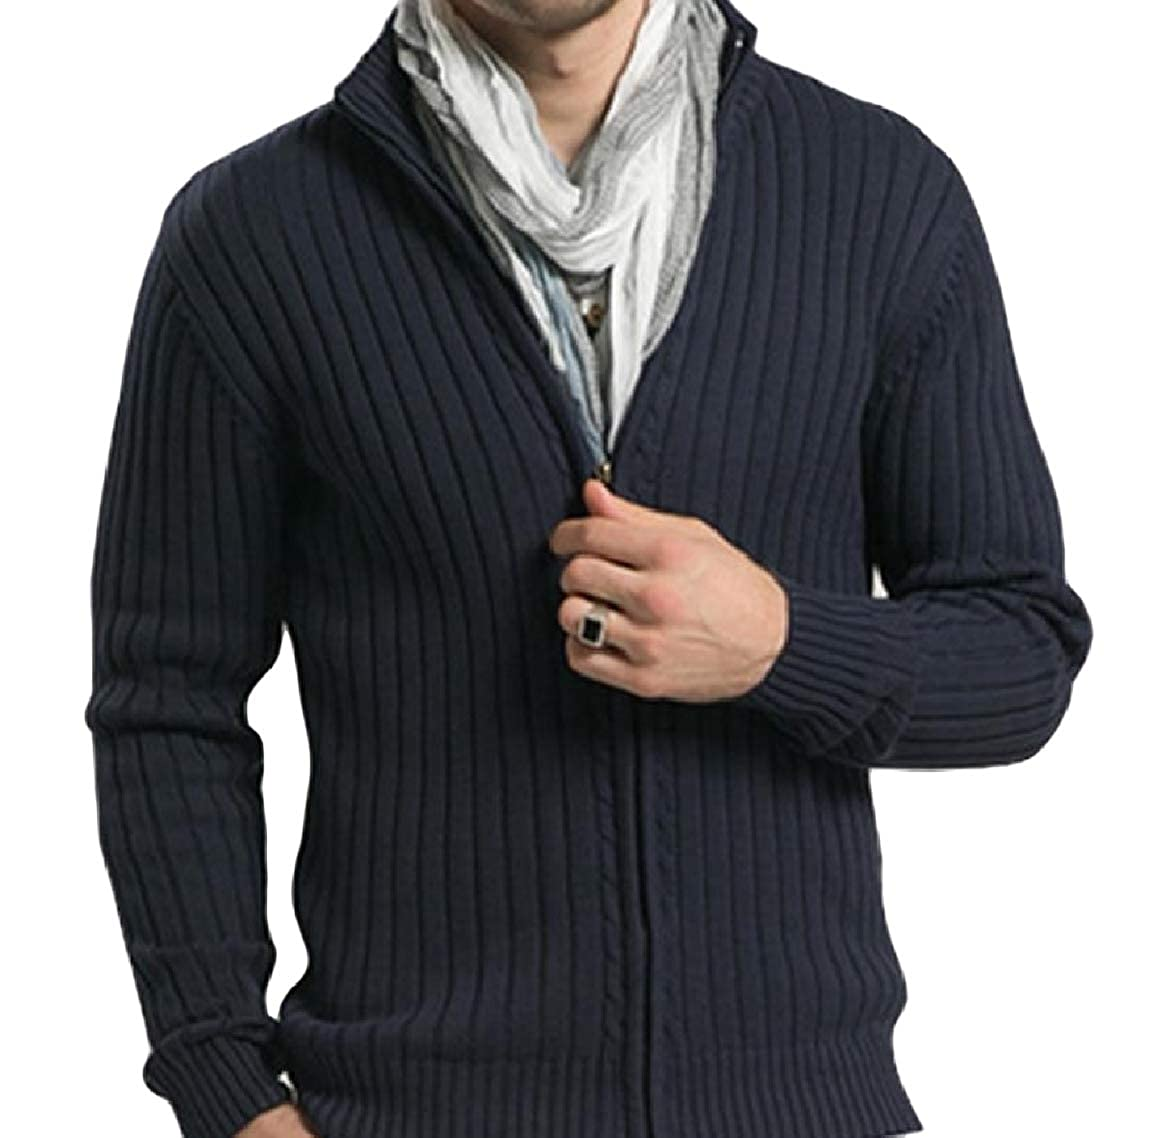 Mfasica Men Zip Long-Sleeve Thickened Stand-up Collar Pure Color Sweater Outwear